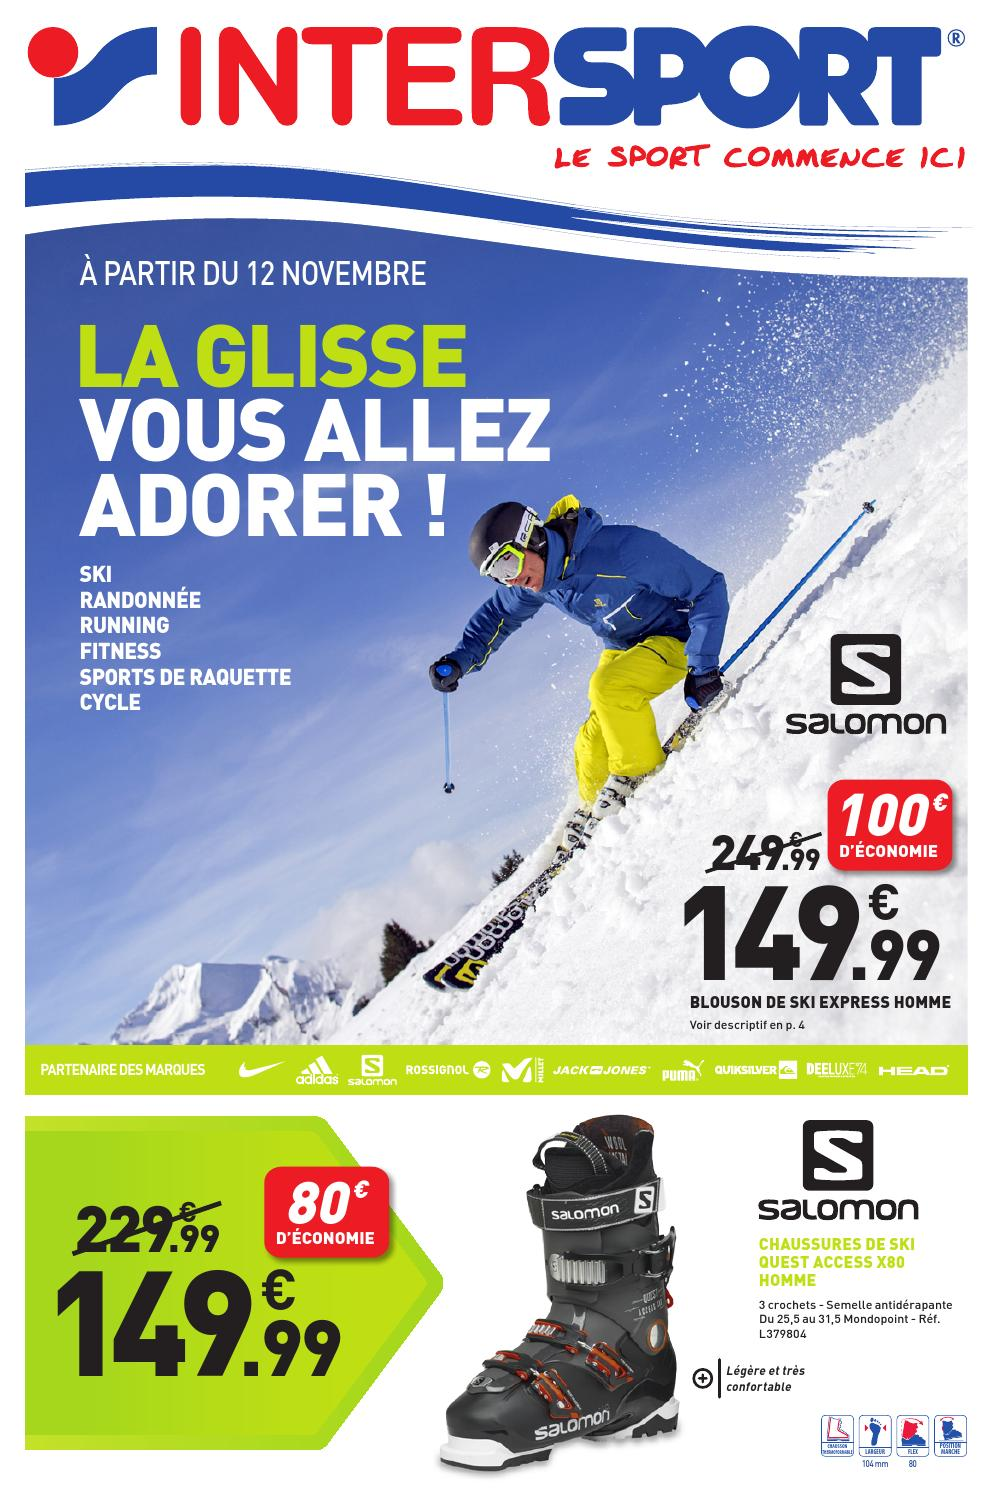 Pages Allez 32 Intersport Adorer La By Vous Glisse wzYRRpqxf